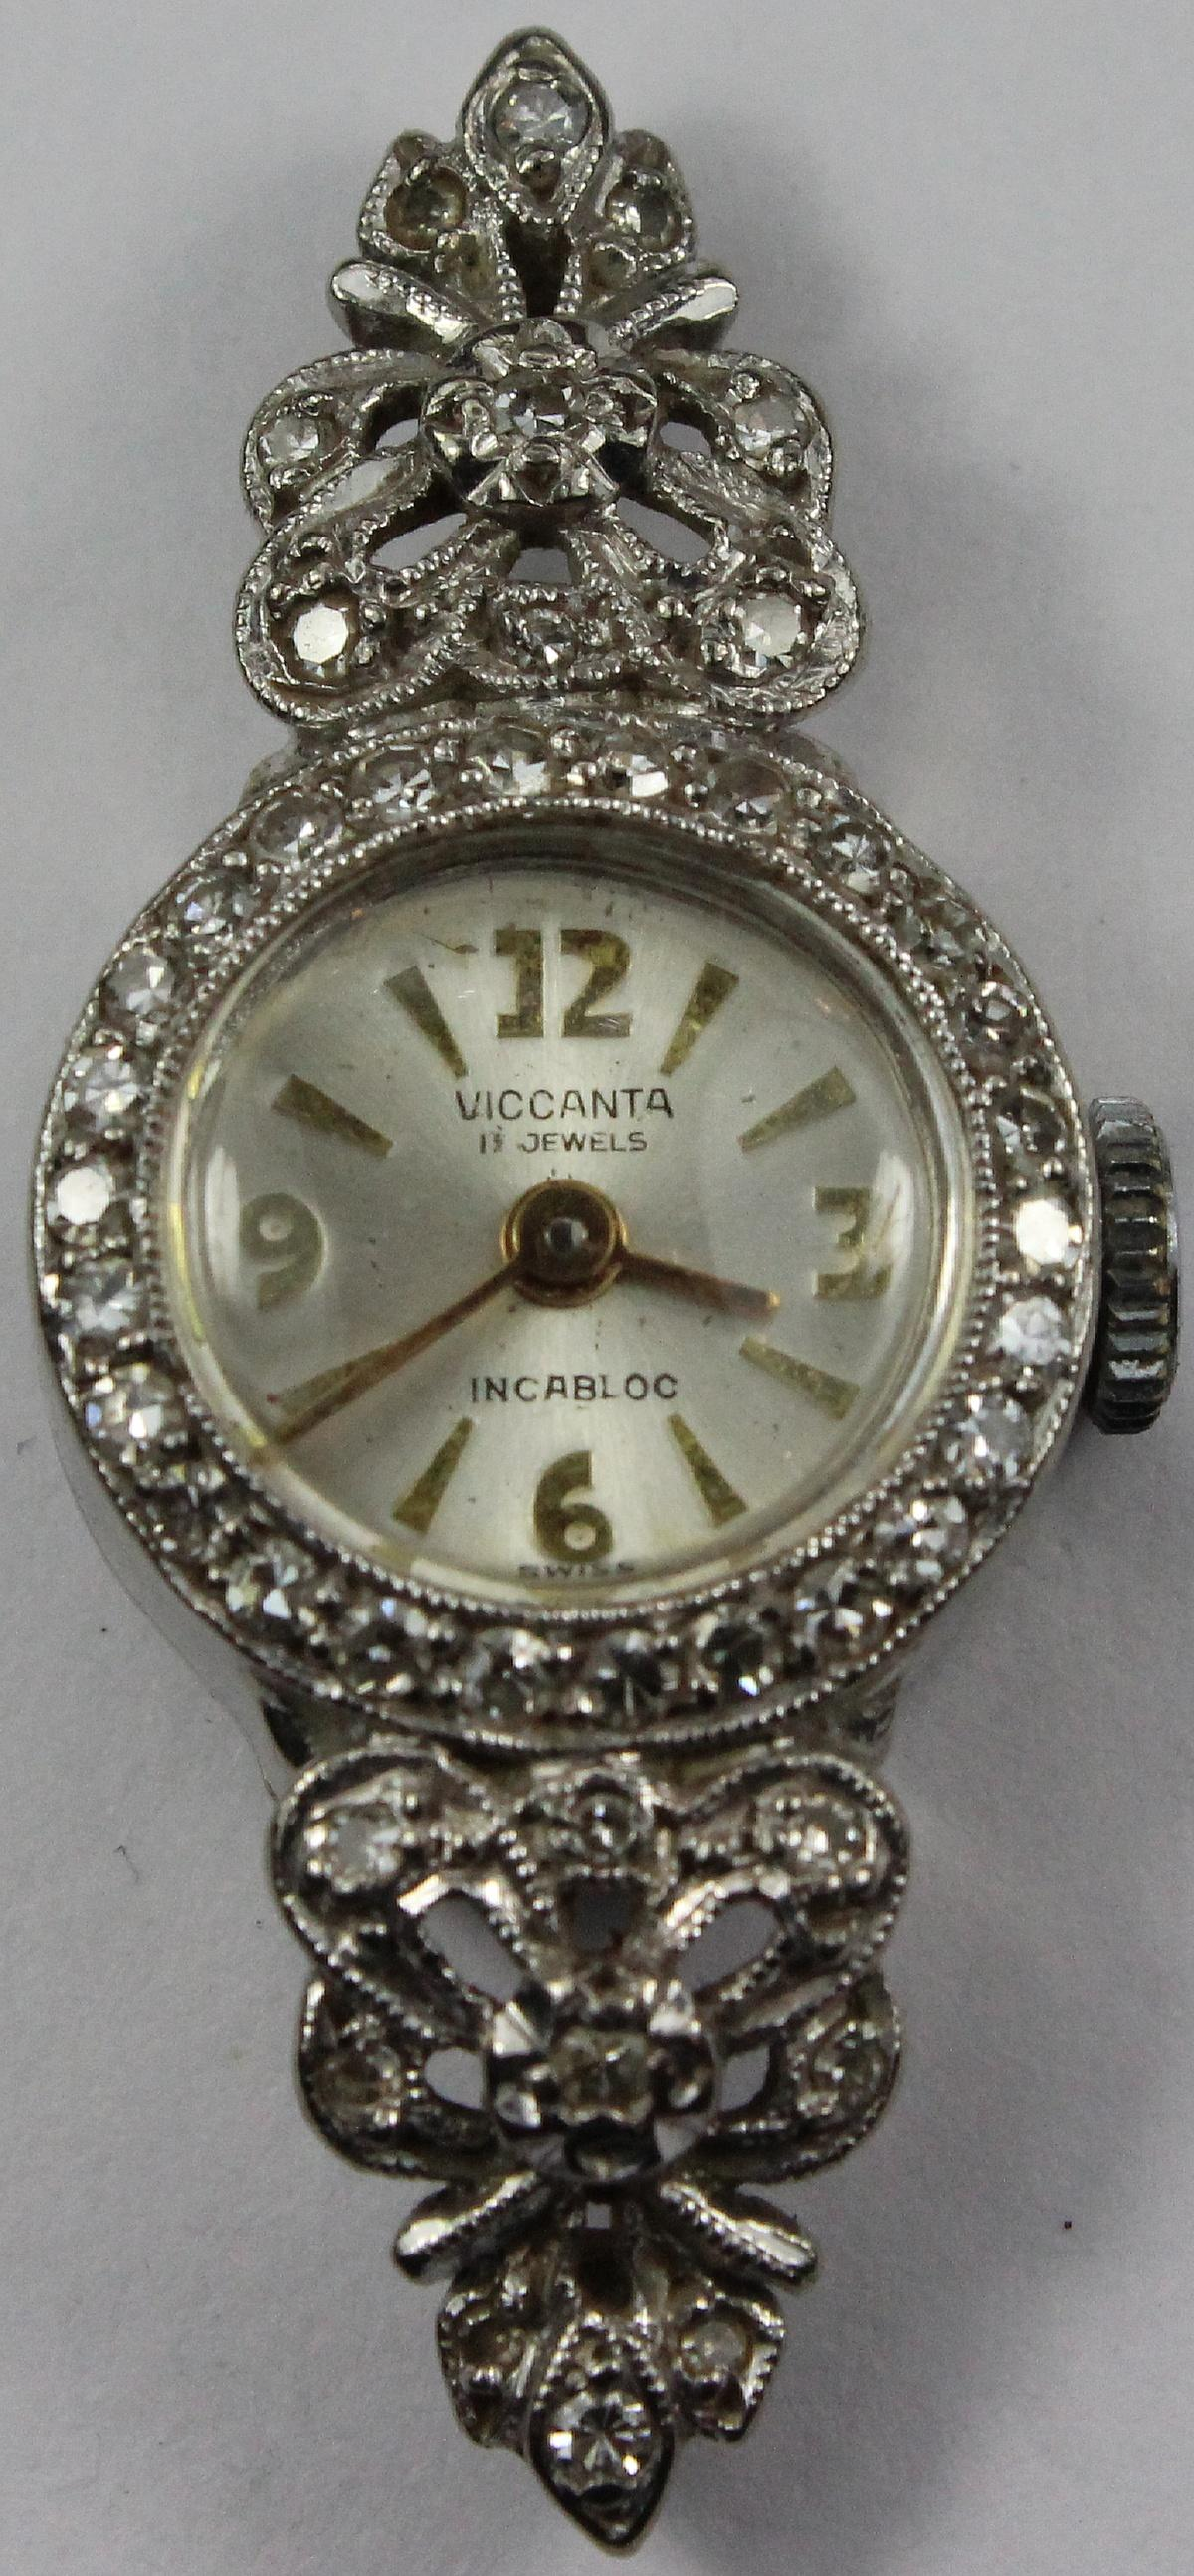 Vintage Woman's 'Viccanta' Watch in 18ct White Gold with Diamonds inset in the surrounds